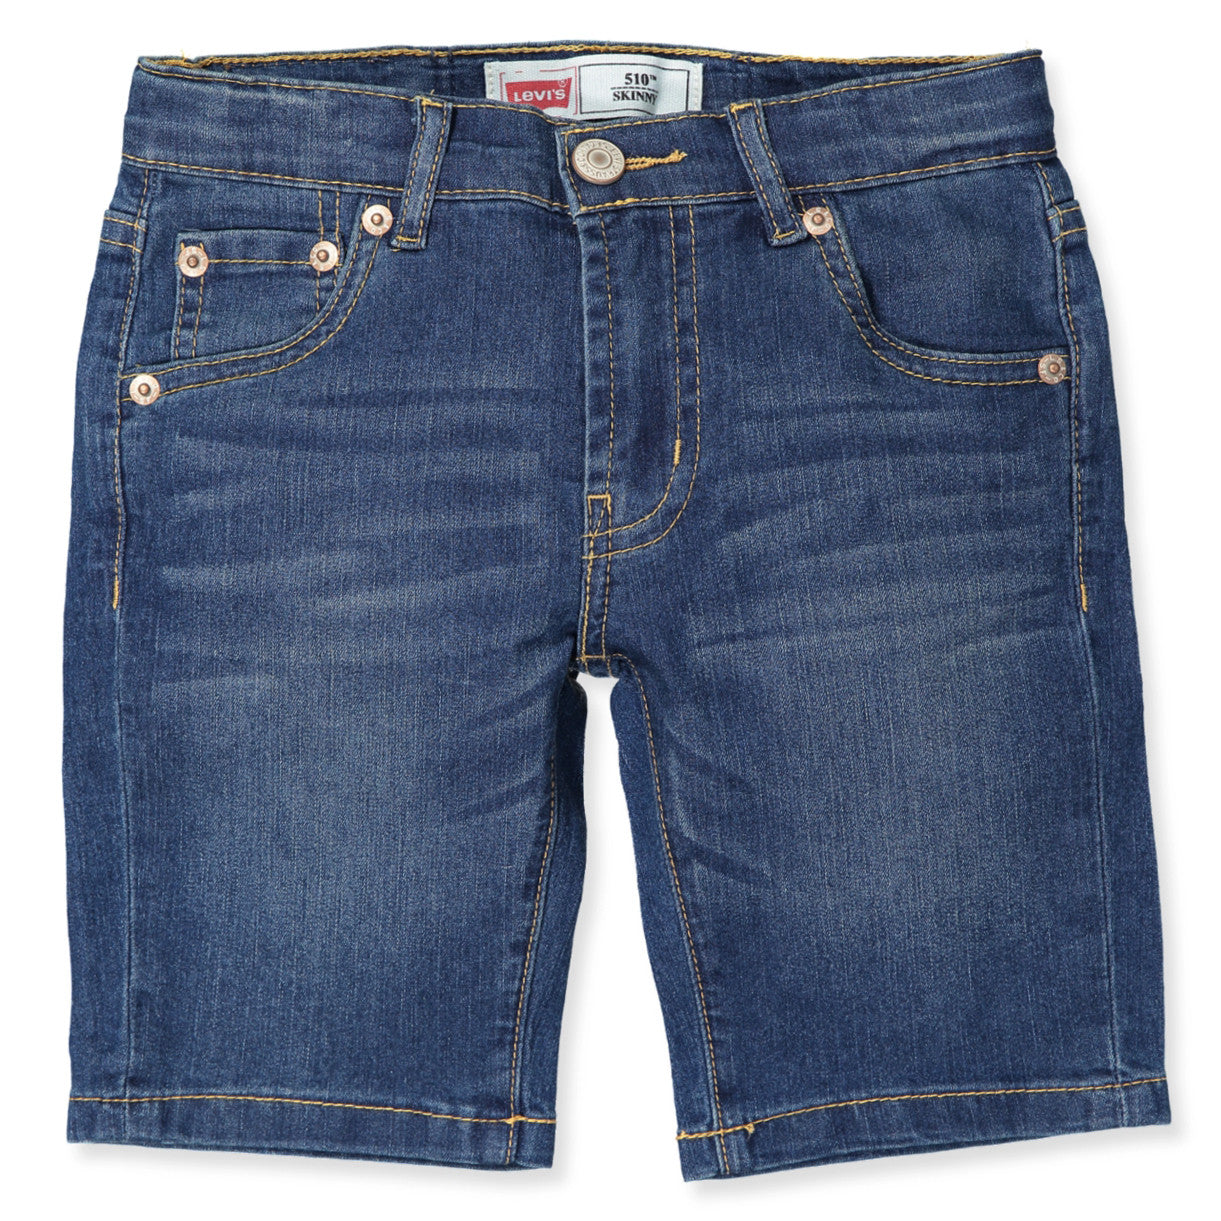 Levi's Shorts - Skinny Denim 510